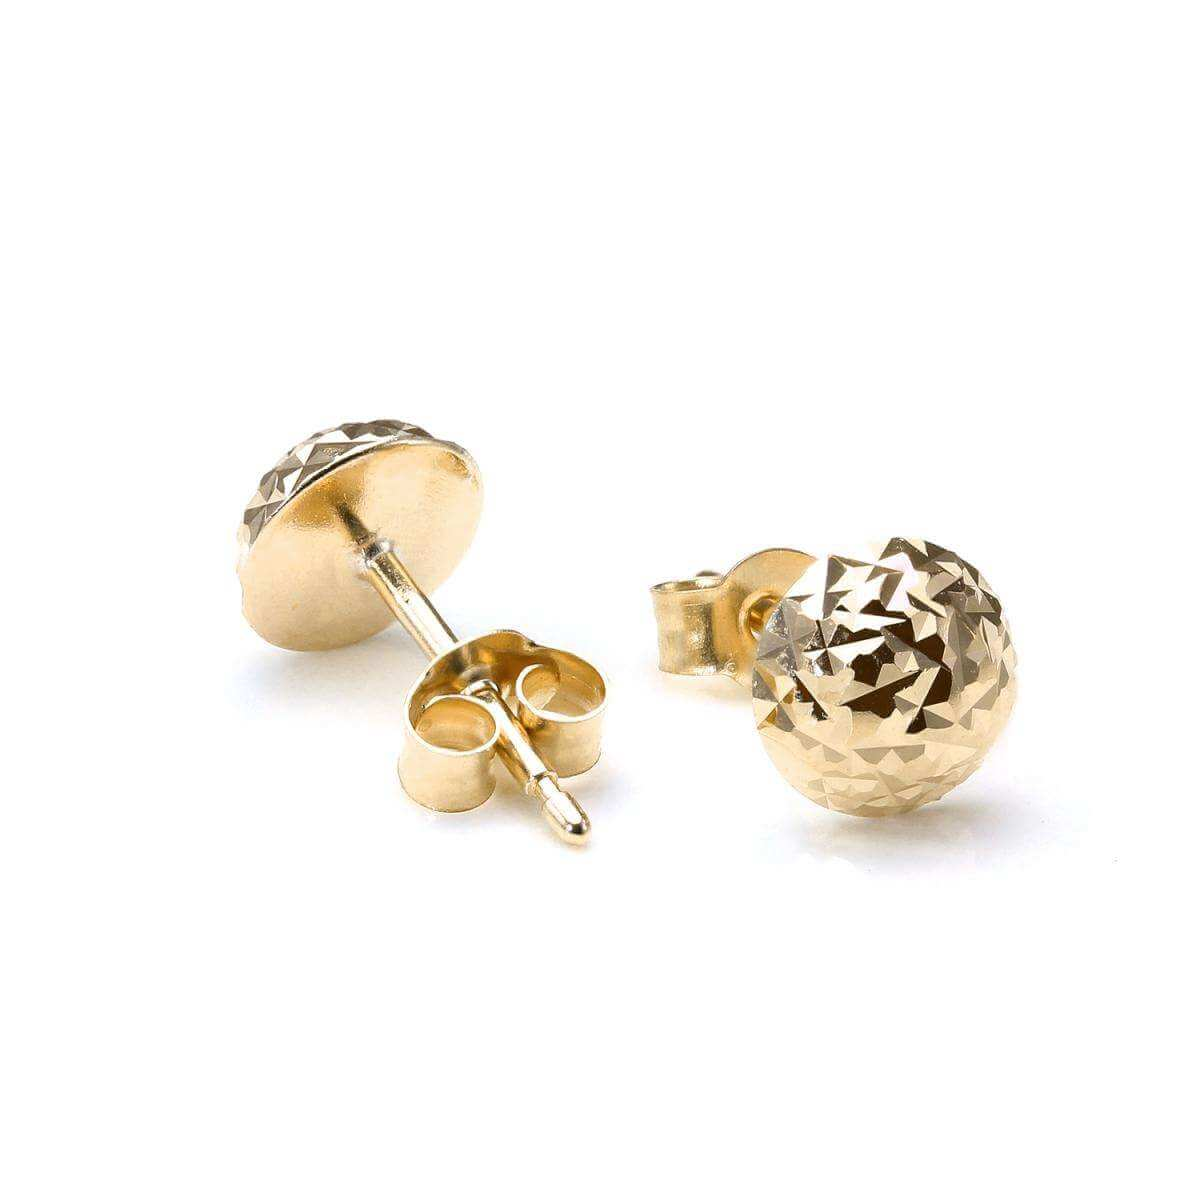 9ct Gold 6mm Round Faceted Domed Stud Earrings